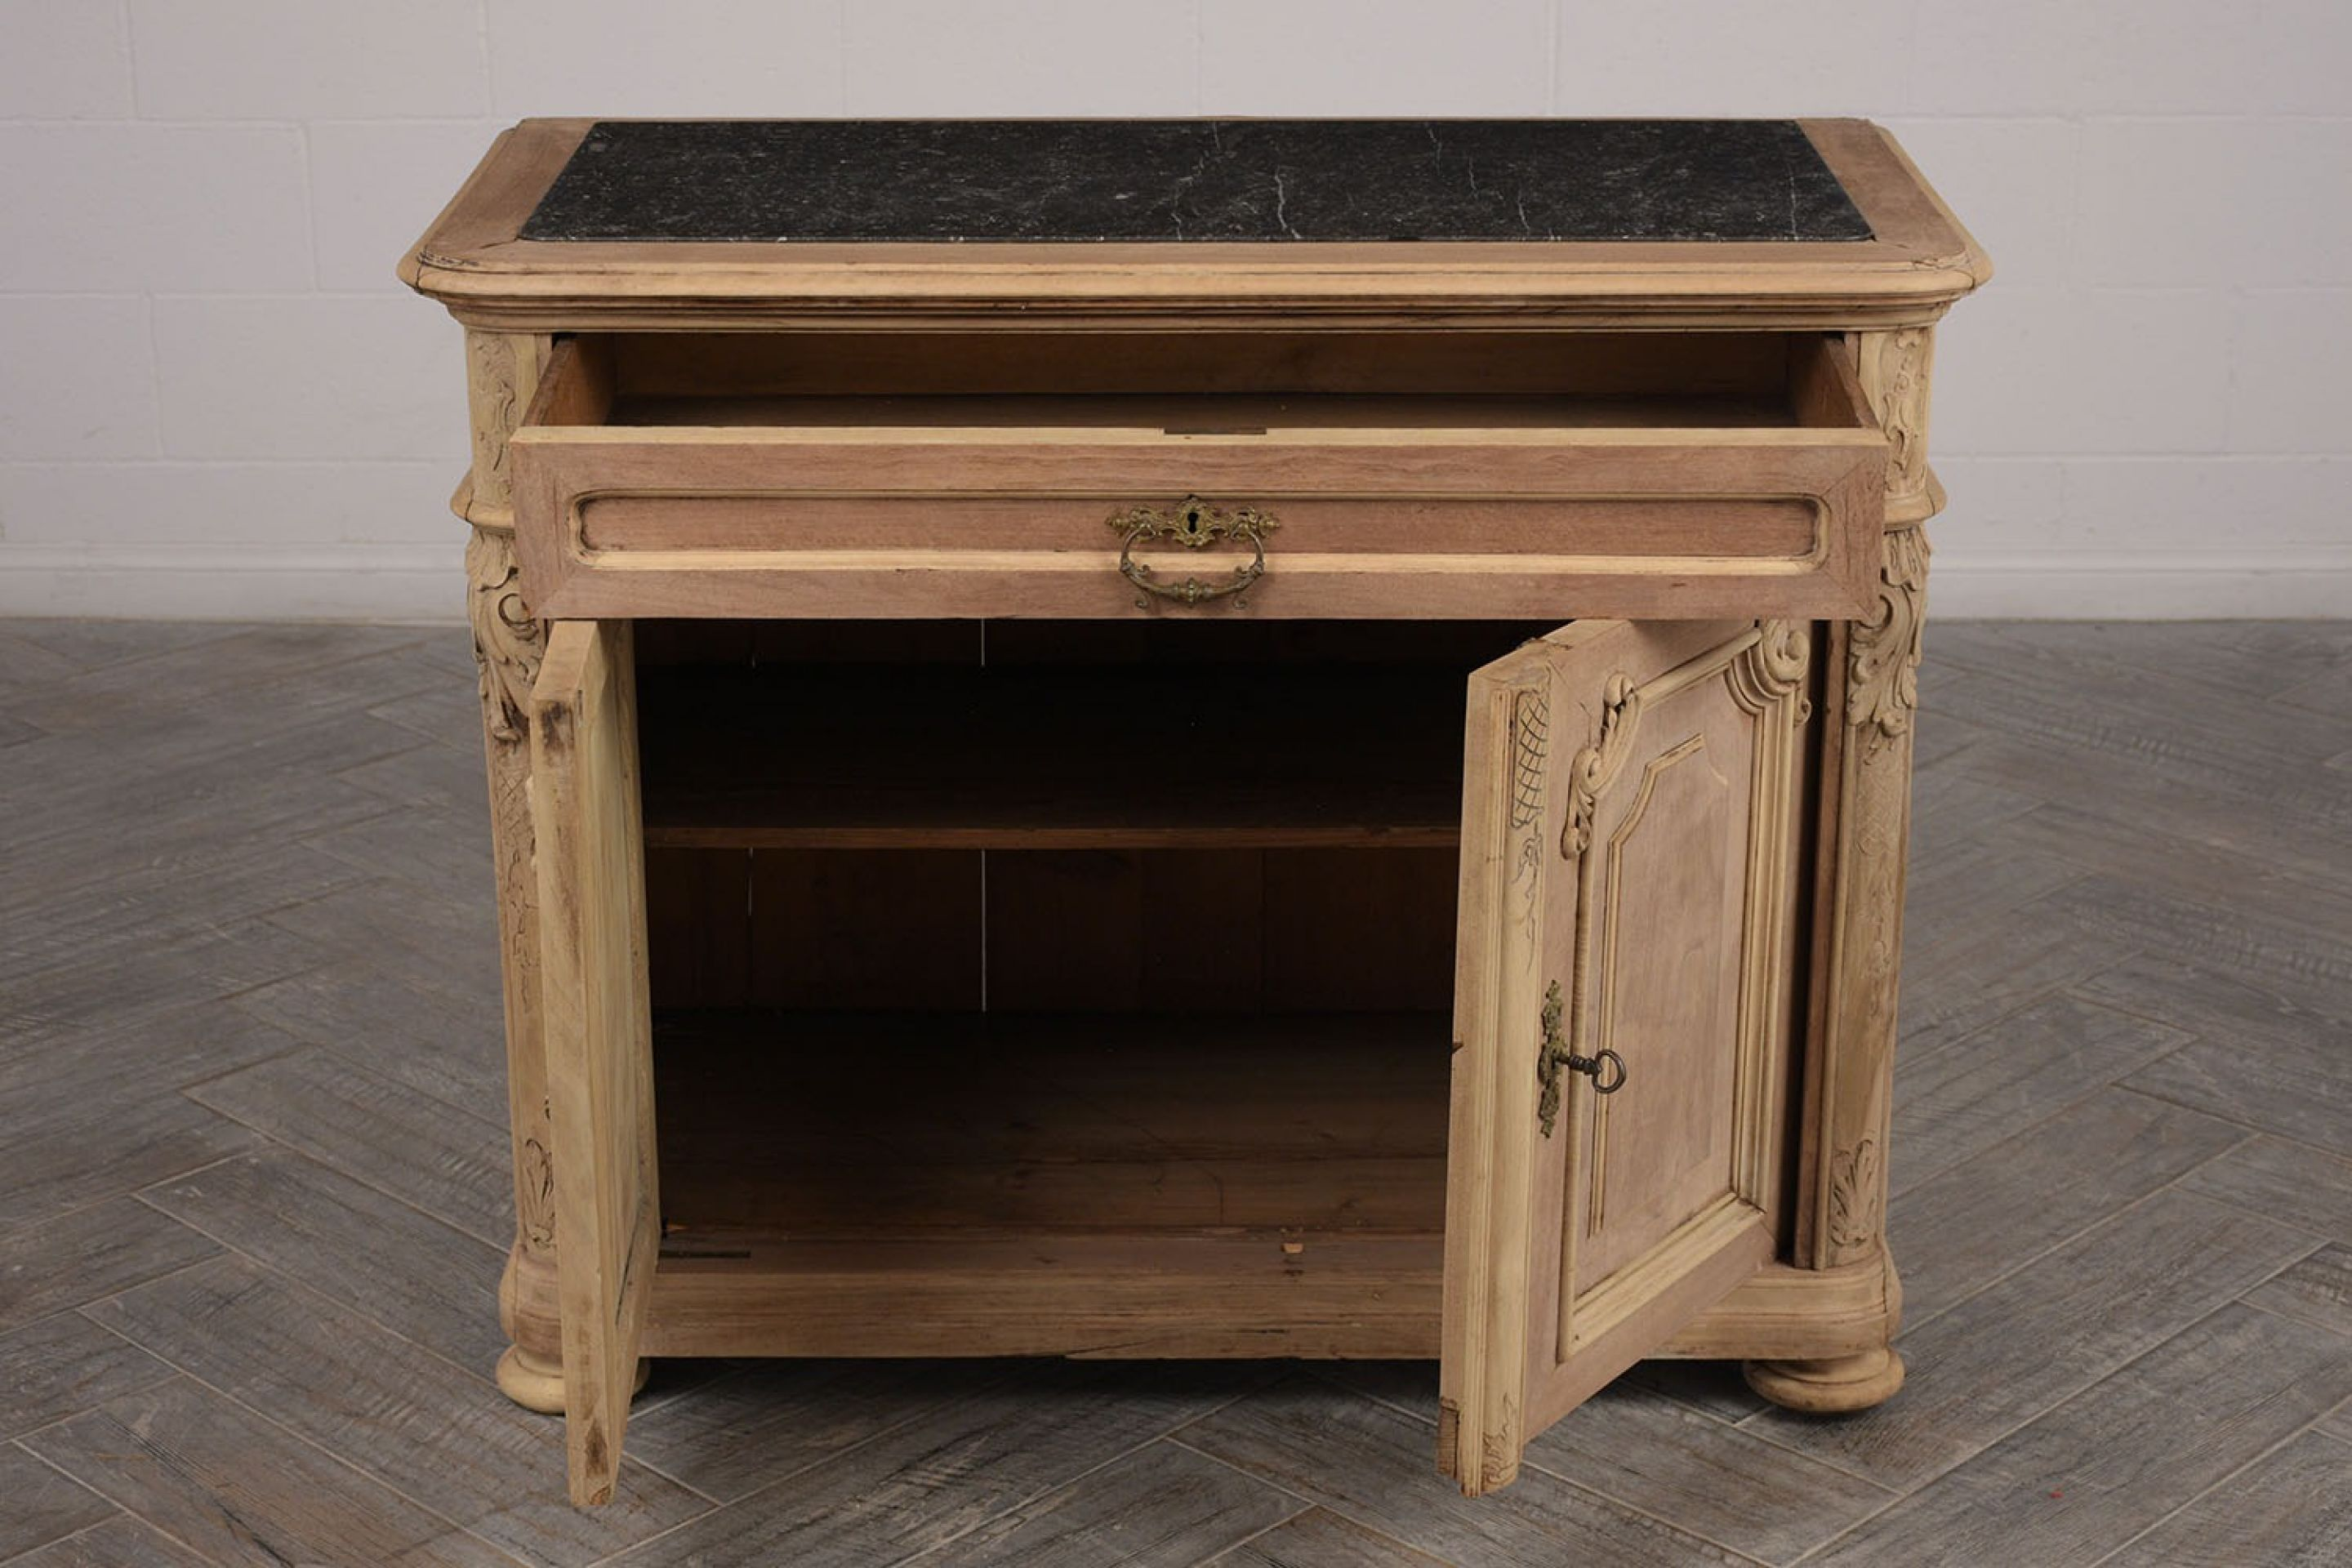 Elegant Marble Top French Renaissance-Style Server/Cabinet